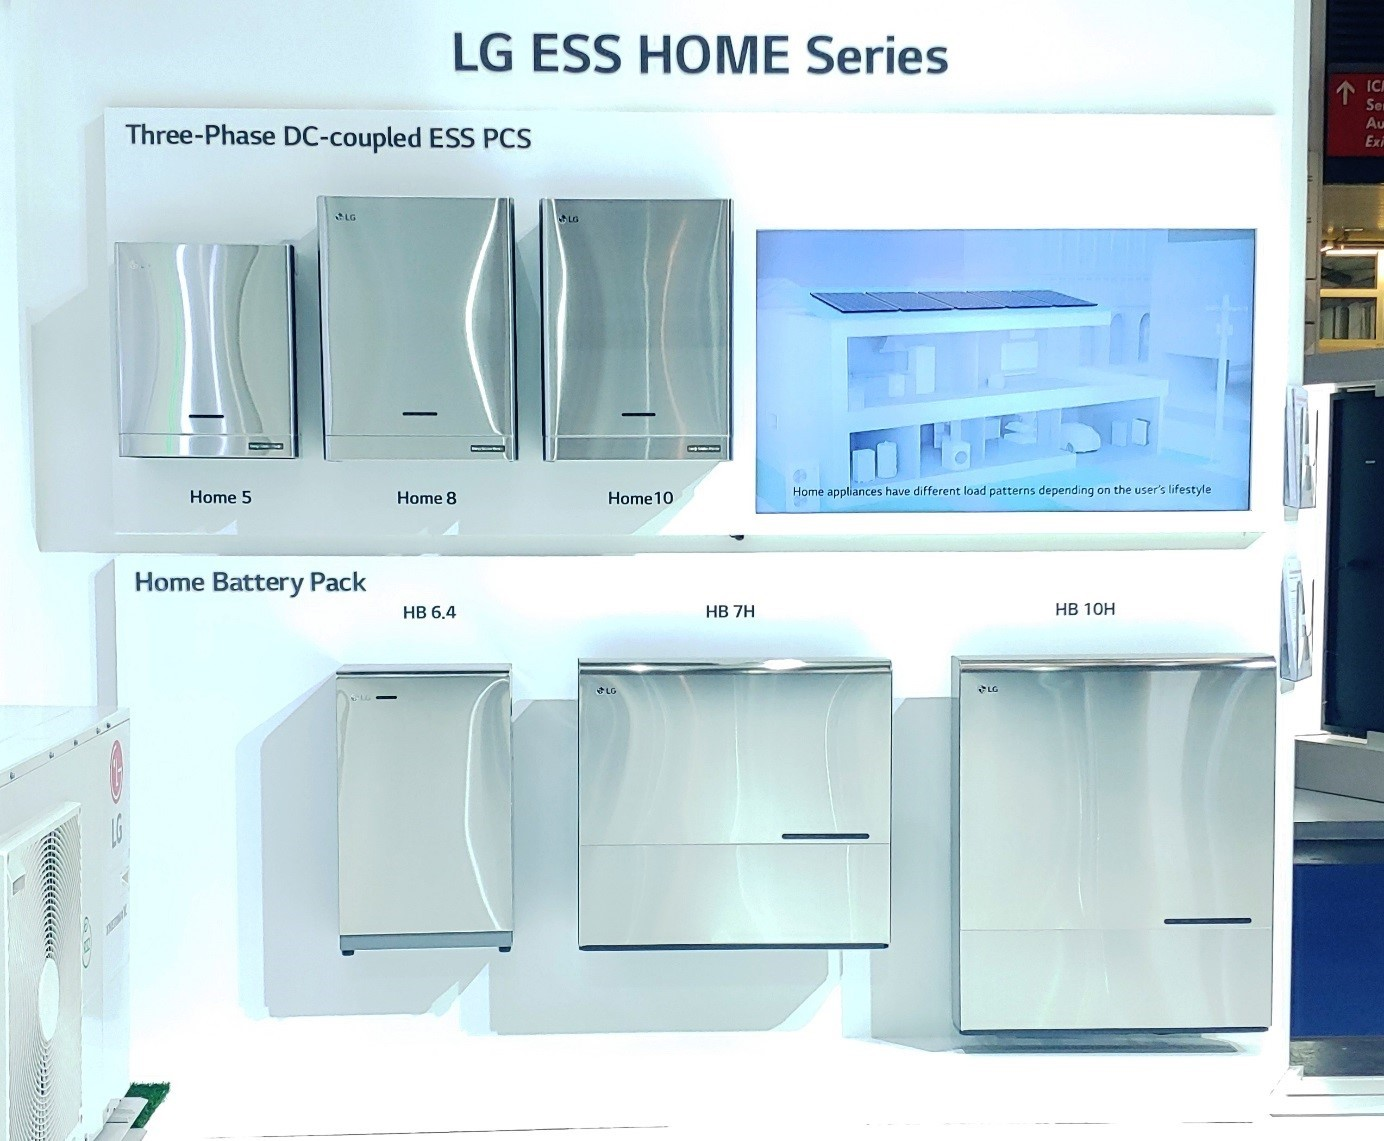 A promotional display of products in the LG ESS HOME Series lineup